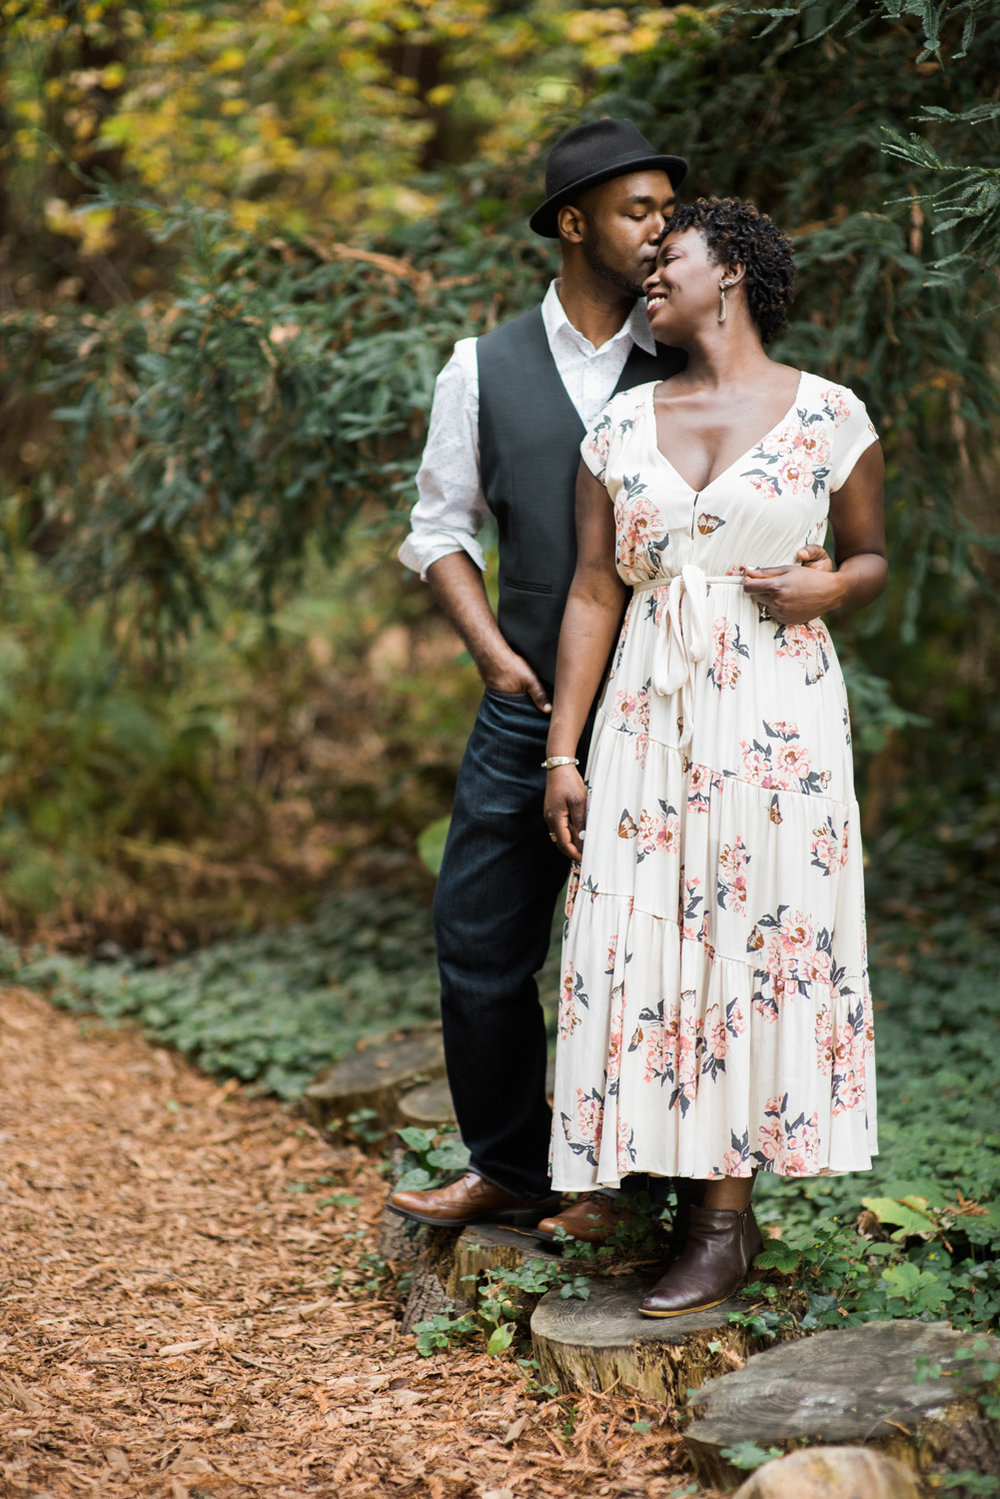 engagement photo couple embraces in garden forest setting